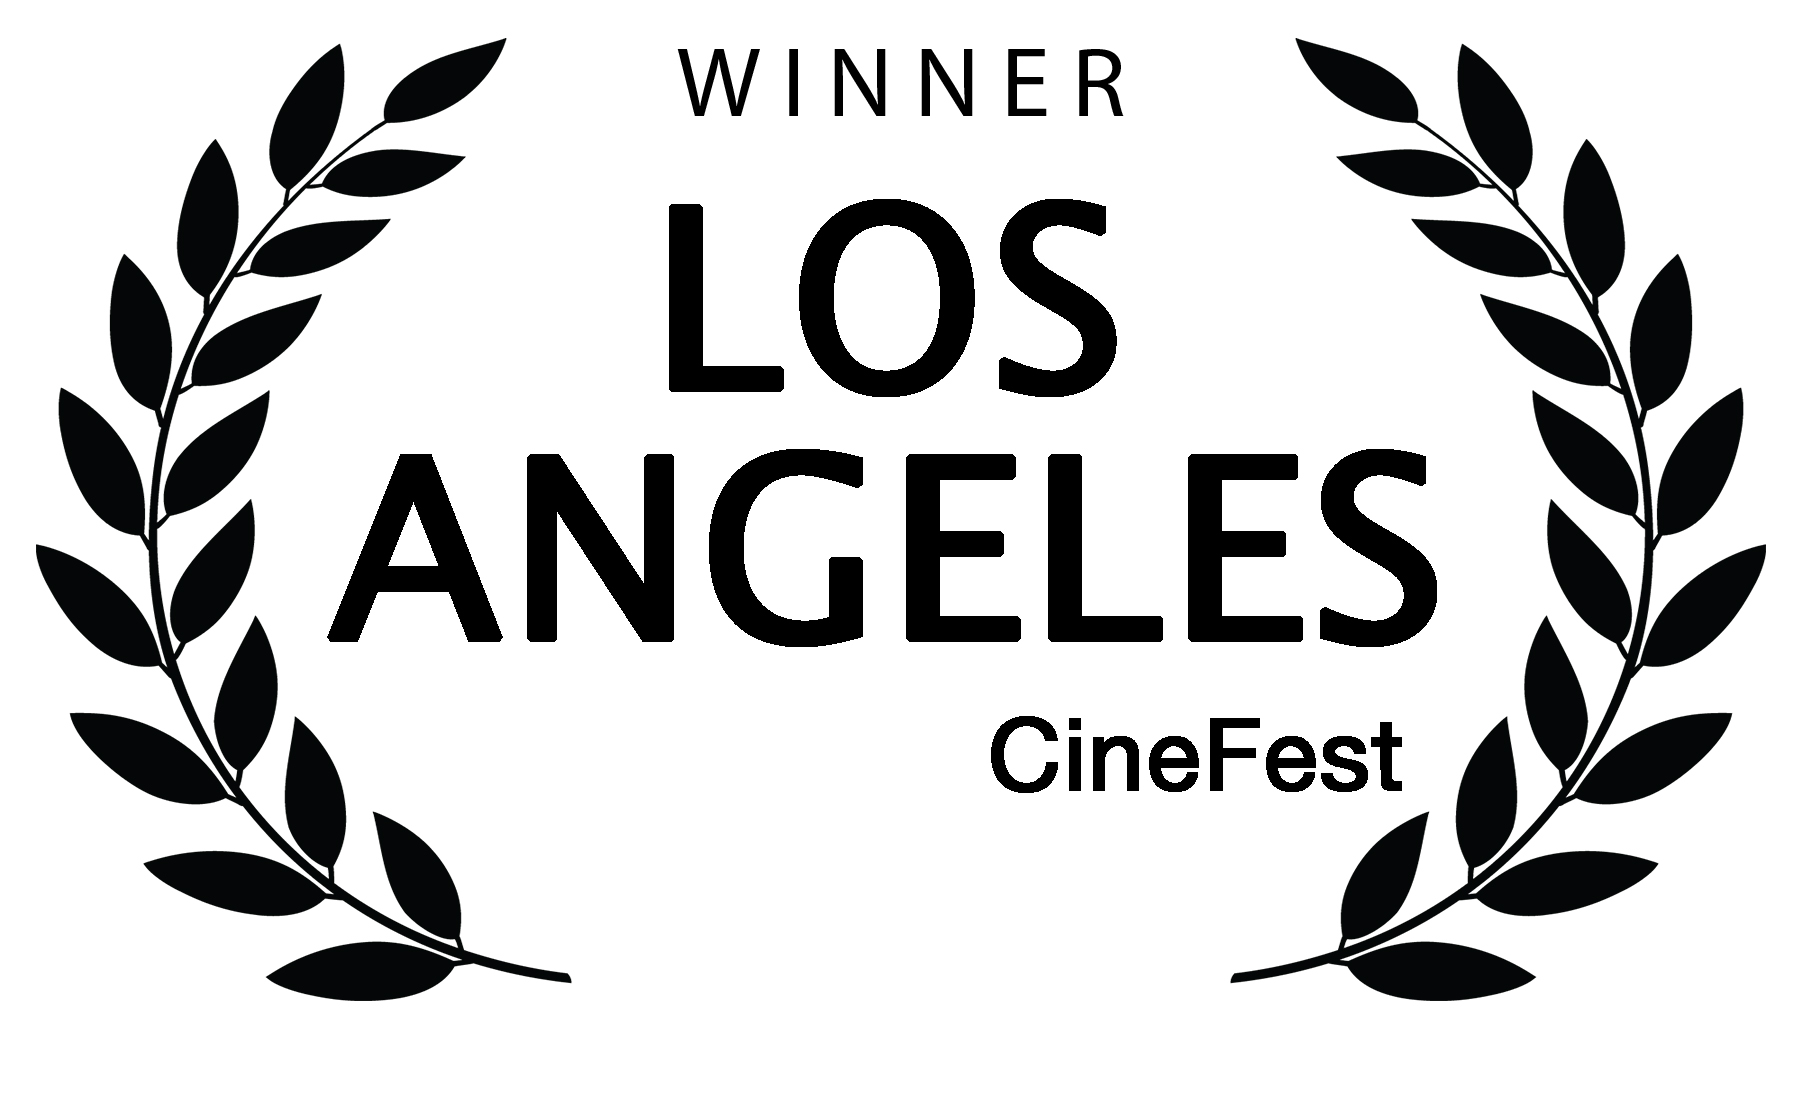 Los Angeles CineFest WINNER